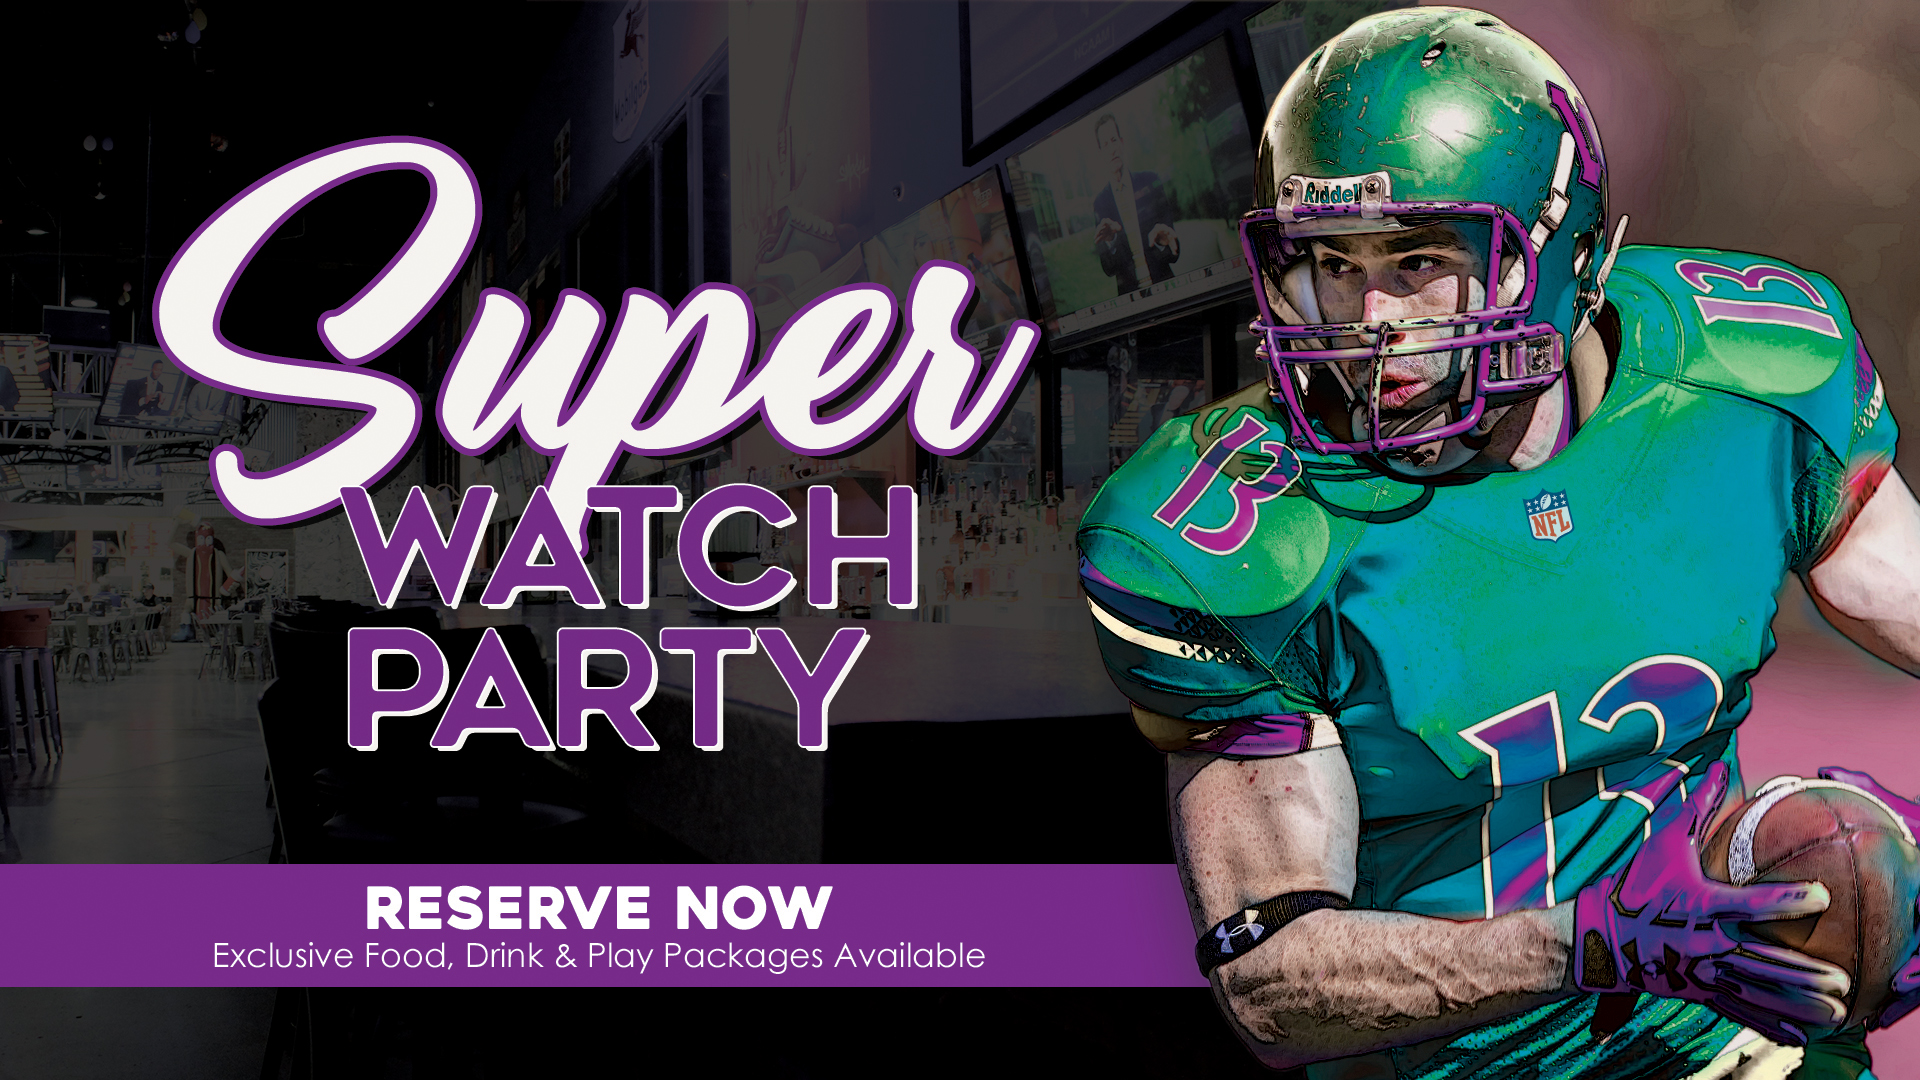 It's a Super Watch Party – See the Super Big Game Bowl 54 in Fort Lauderdale